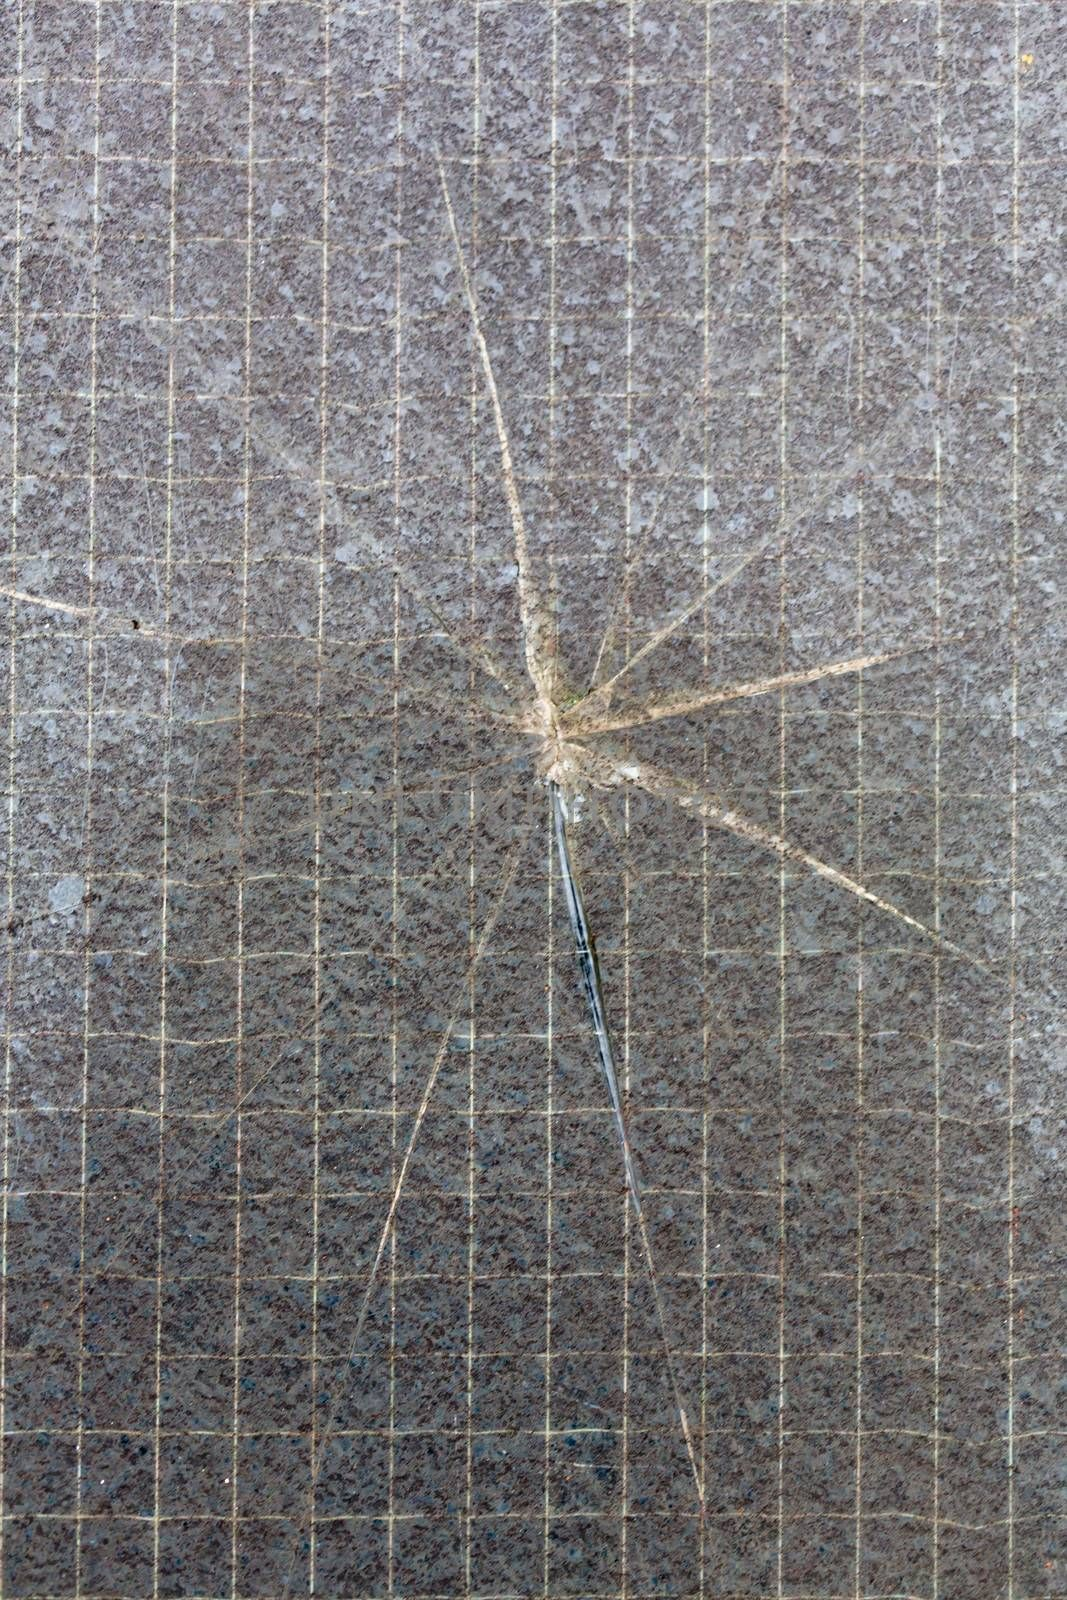 Cracked wall tiled texture